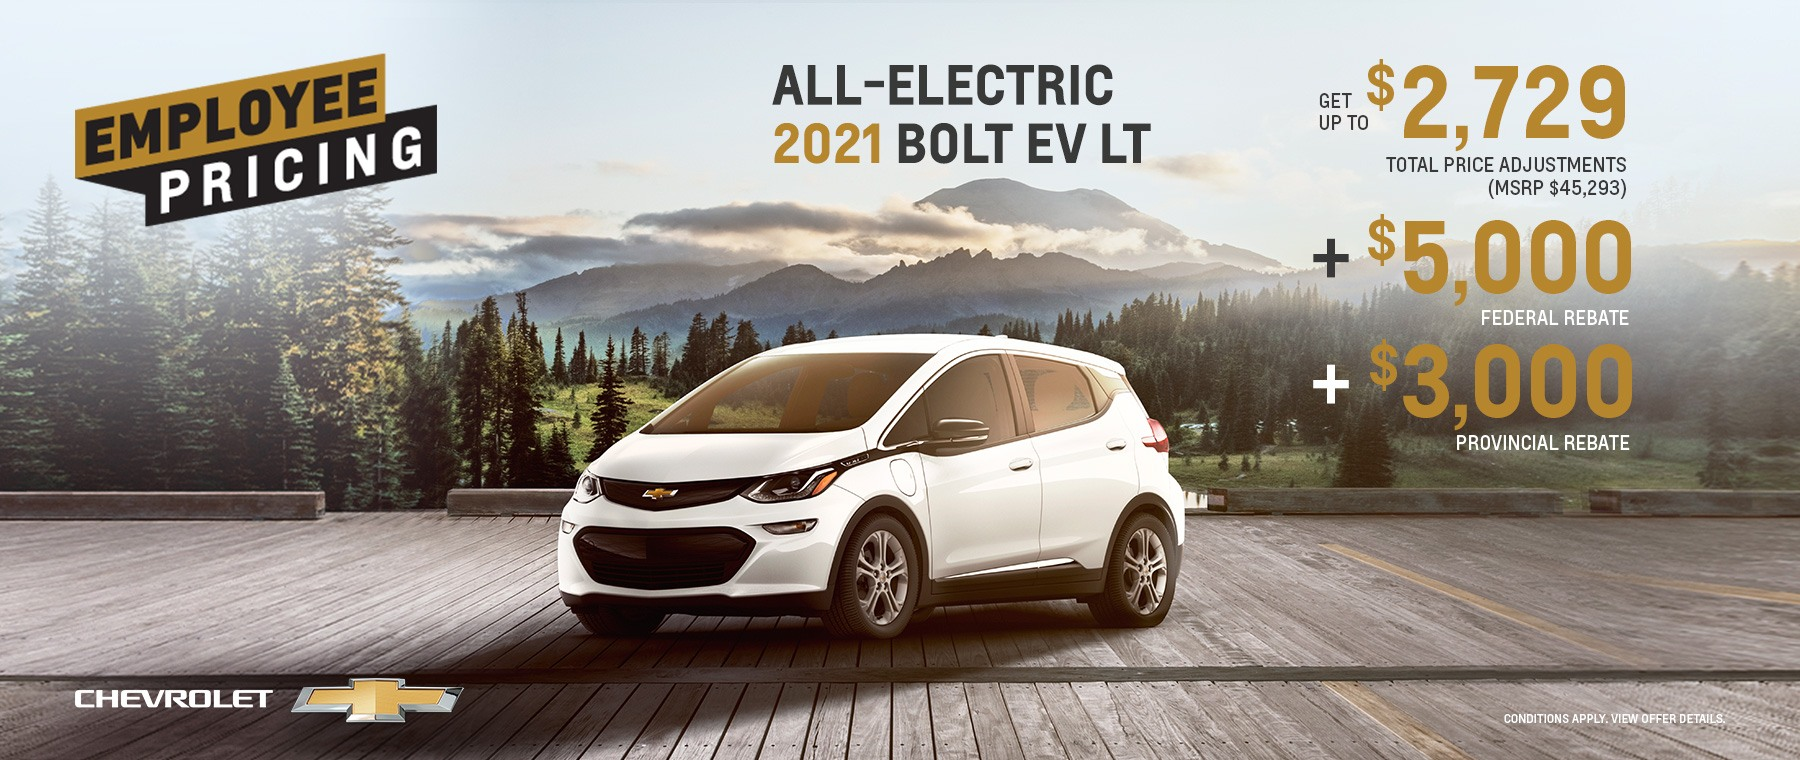 Employee Pricing – All-Electric 2021 Bolt EV LT